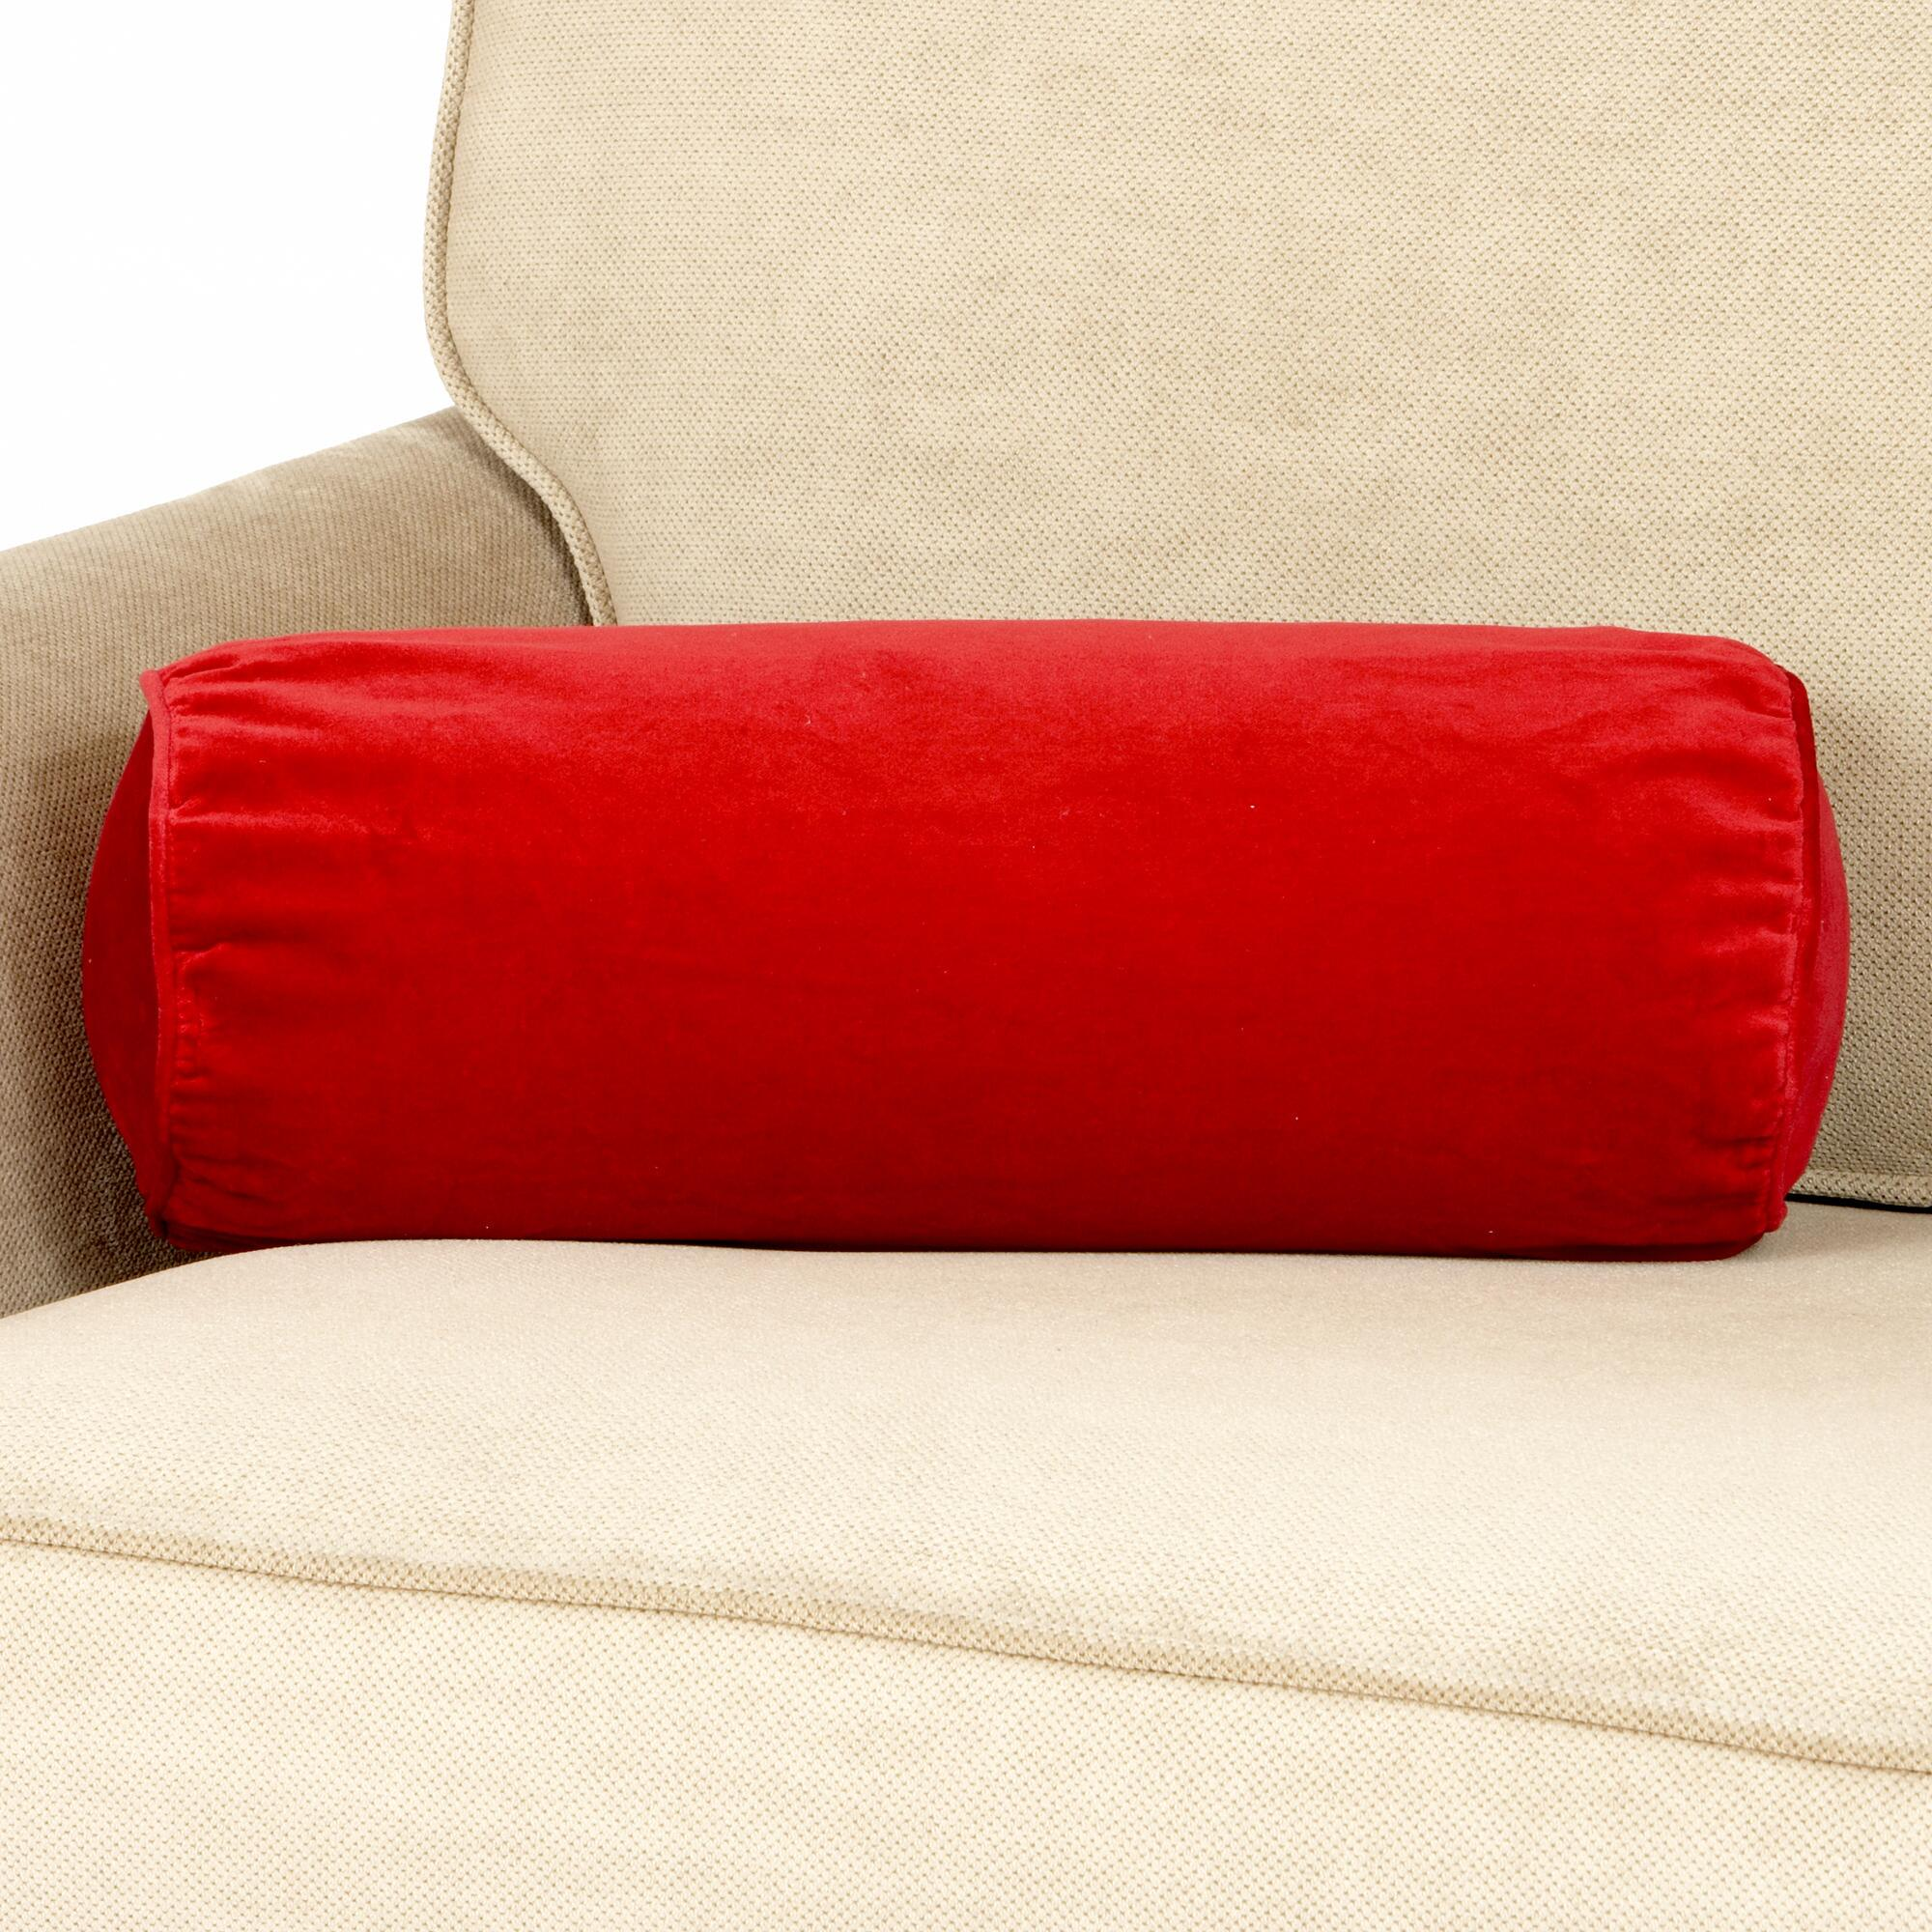 Throw Pillow Bolster : Red Velvet Bolster Throw Pillow World Market on PopScreen